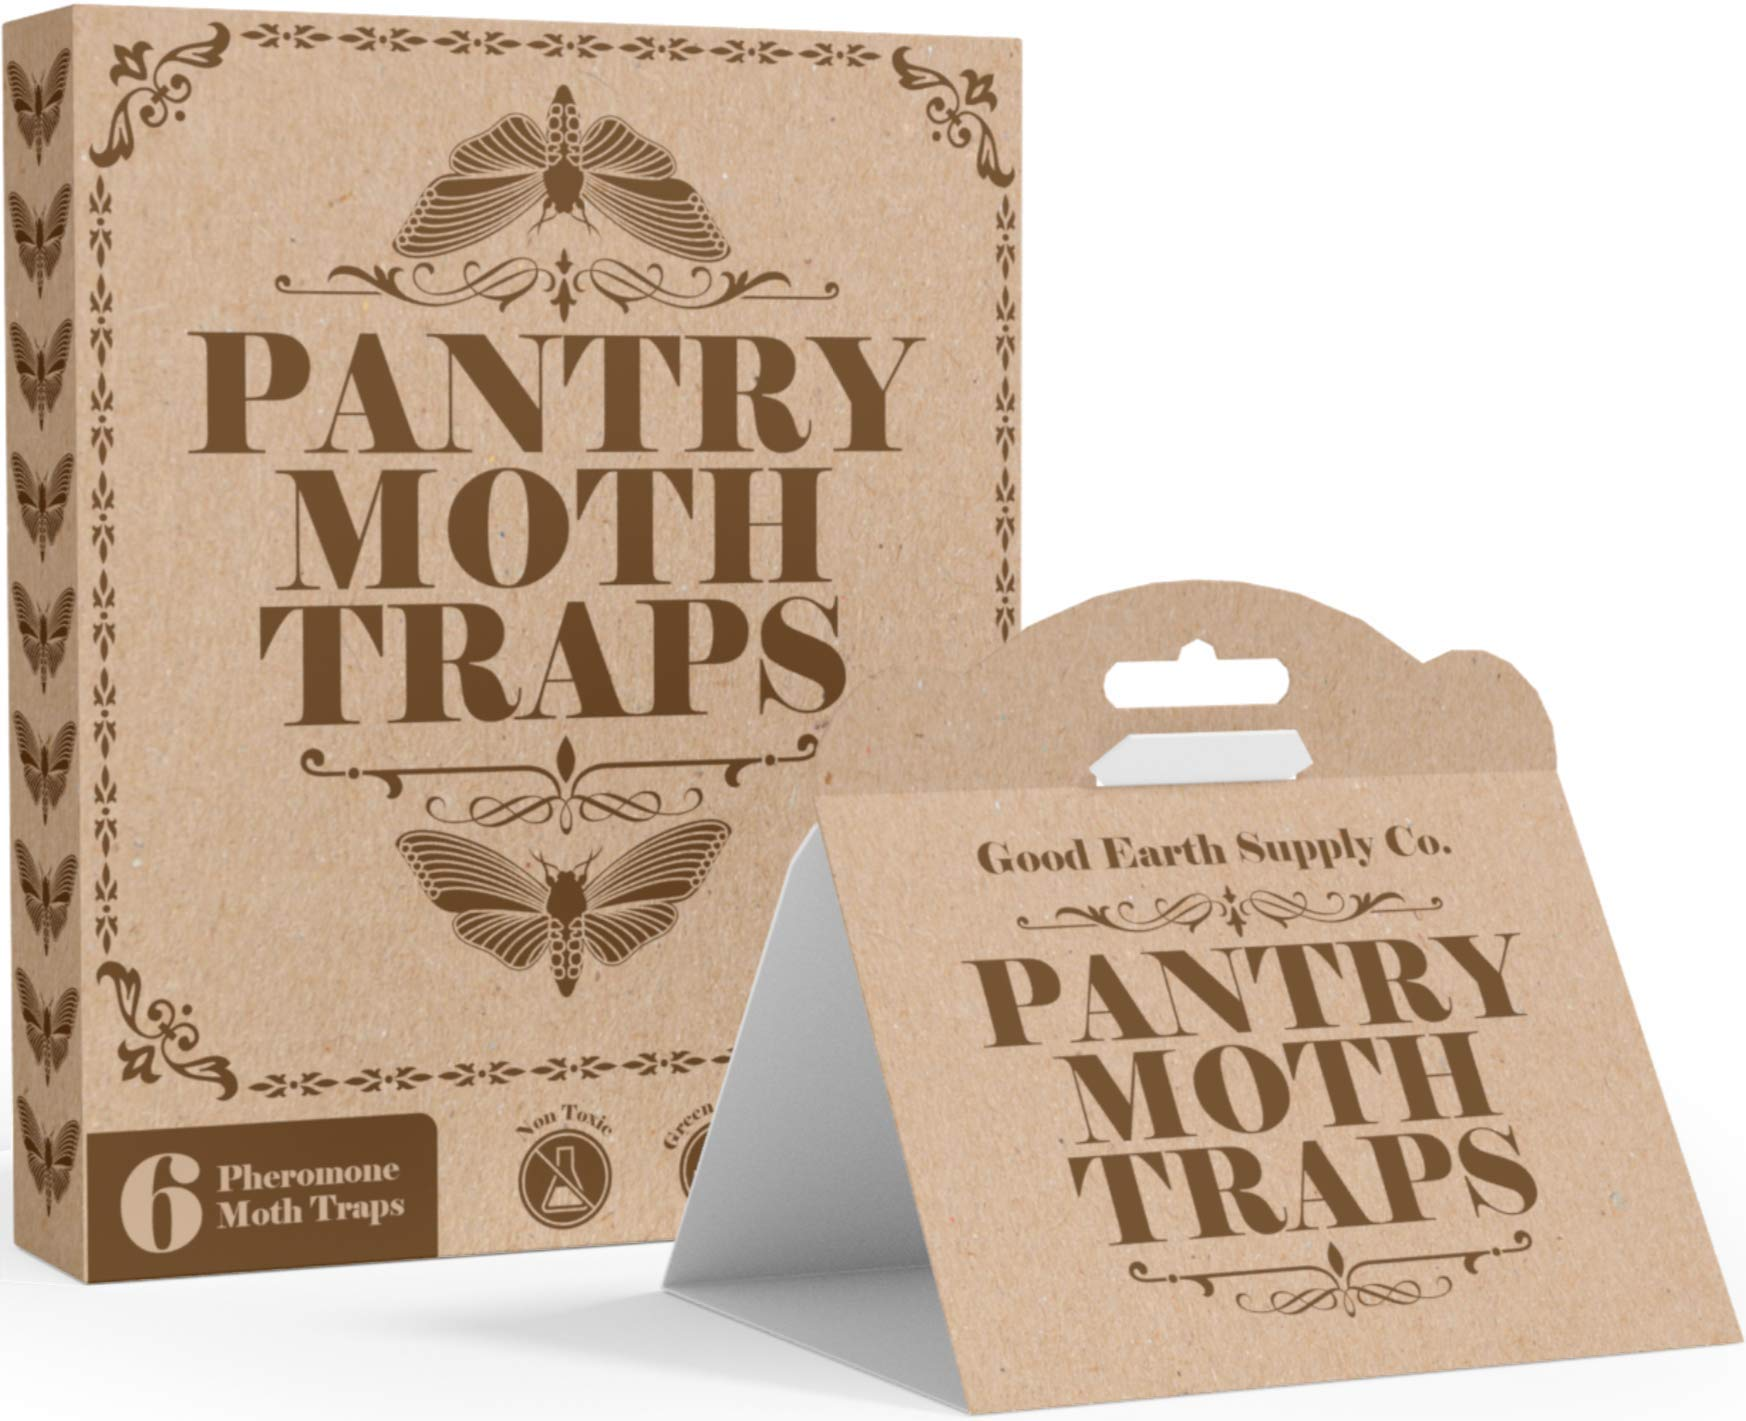 Odor-Free /& Natural RRAS Powerful Moth Traps Protects 3 Closets for 1 Year 3-Pack with 4 Refills//Pack